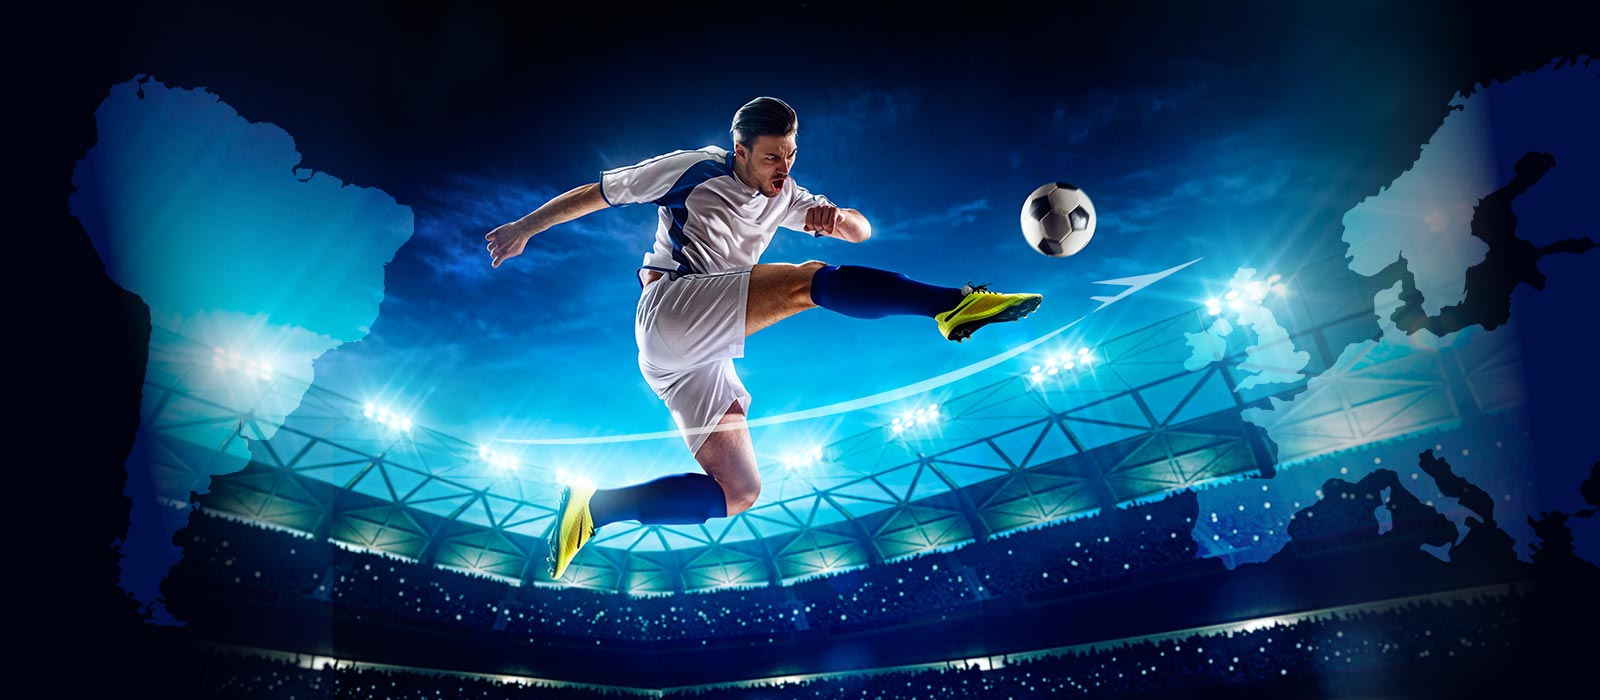 Football/soccer player jumping in front of evening sky to hit football/soccer in stadium